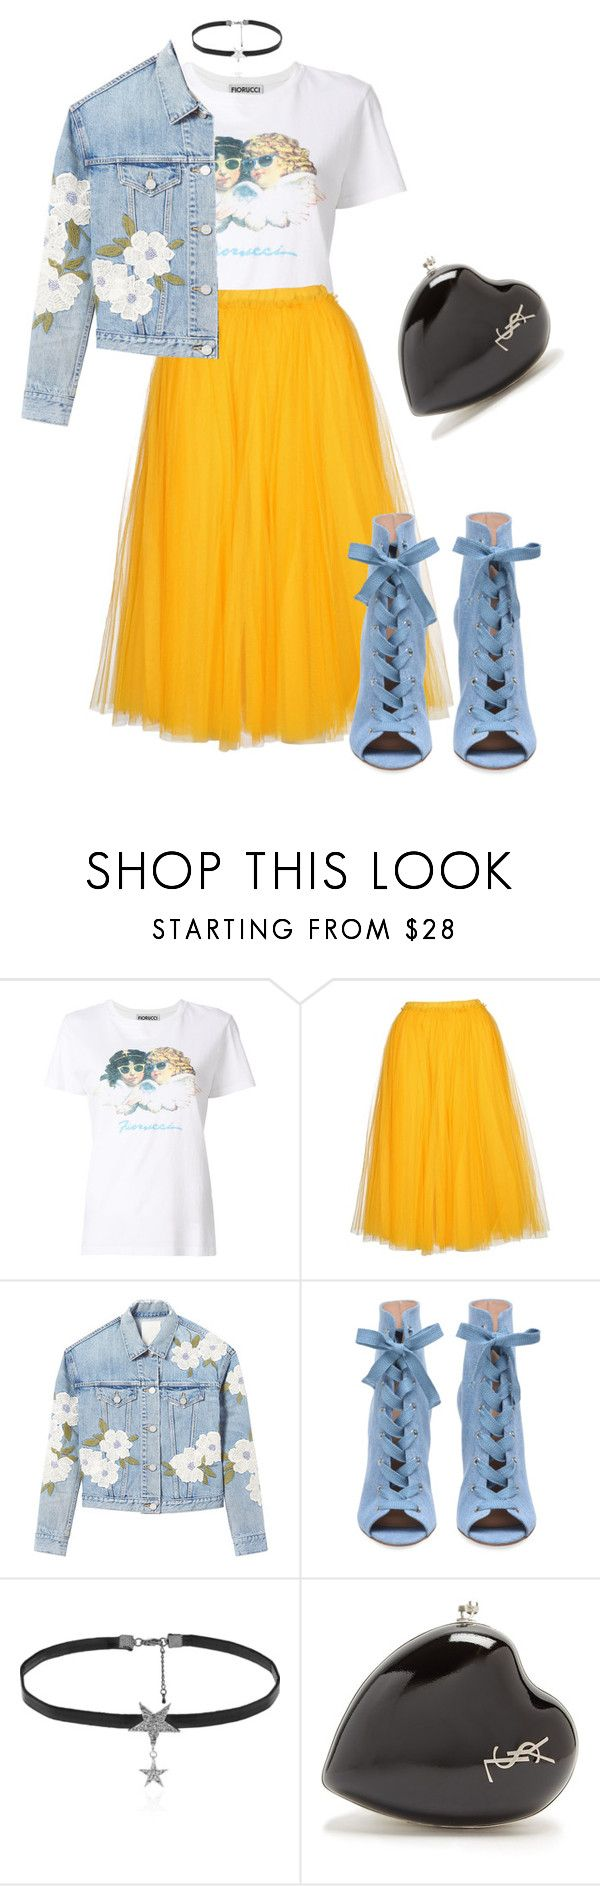 """""""Untitled #189"""" by acarine-rios on Polyvore featuring Fiorucci, N°21, Rebecca Taylor, Love Rocks and Yves Saint Laurent"""